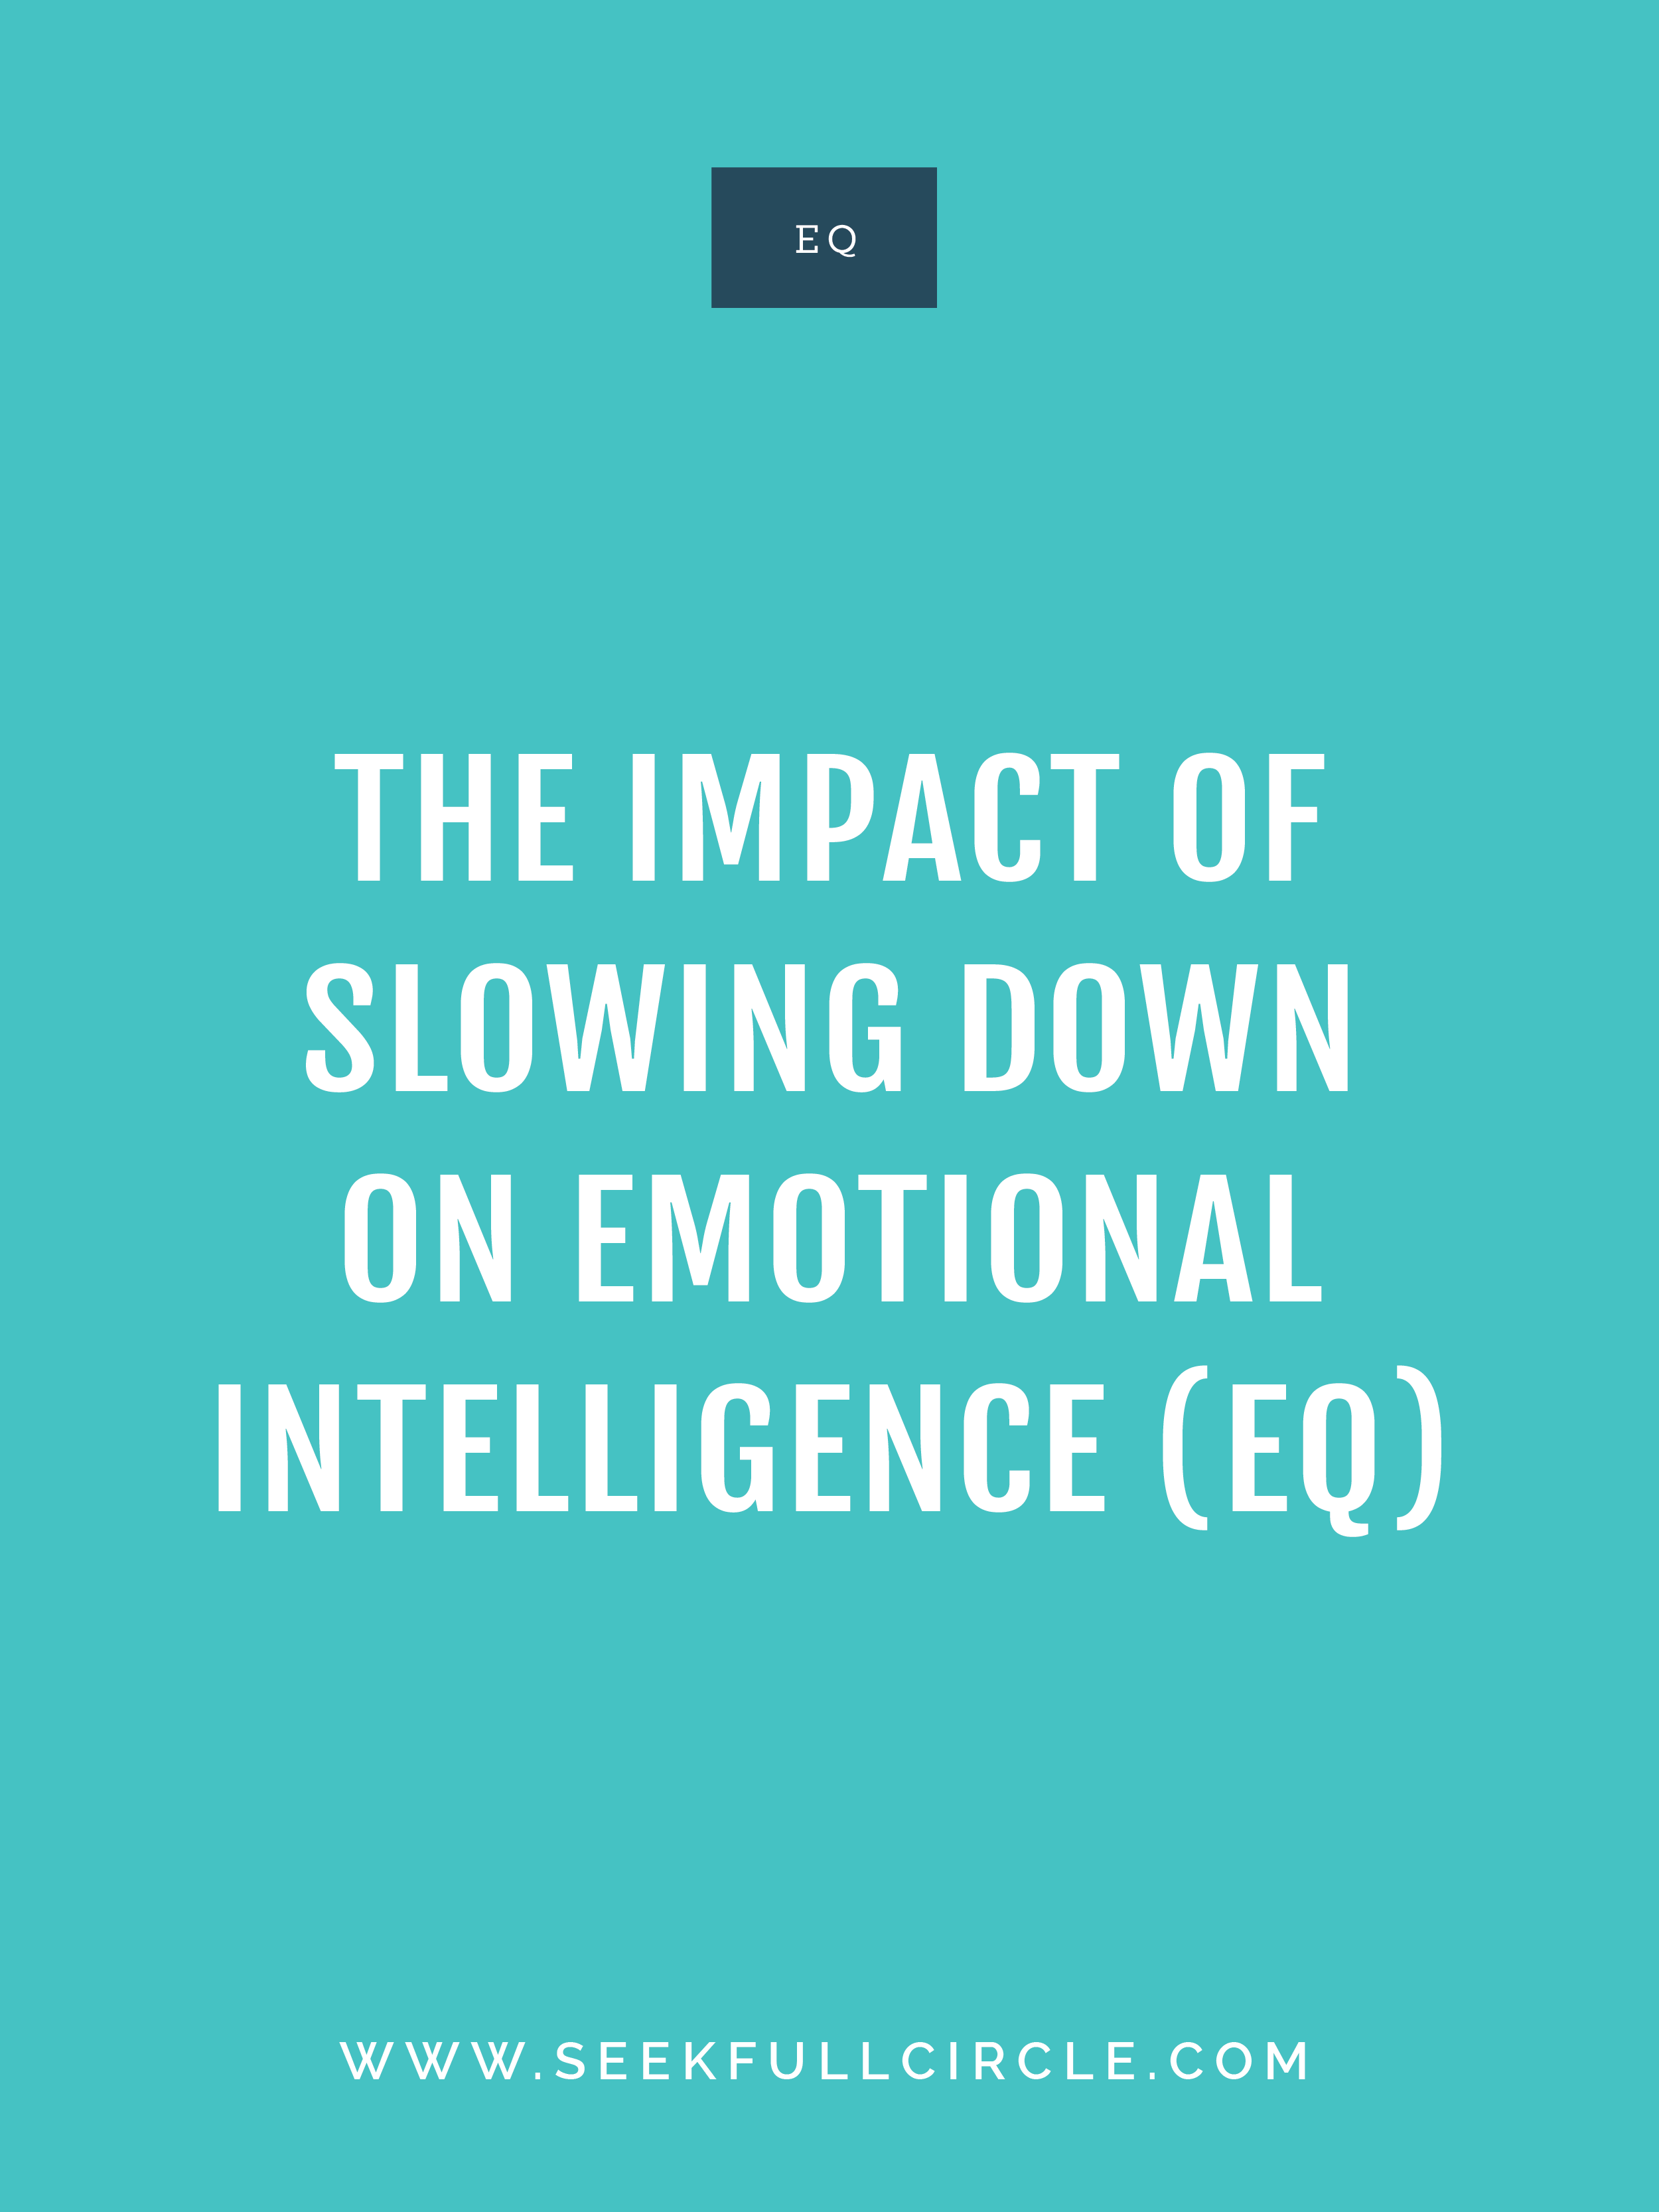 Impact of slowing down on emotional intelligence eq Kim Waltman